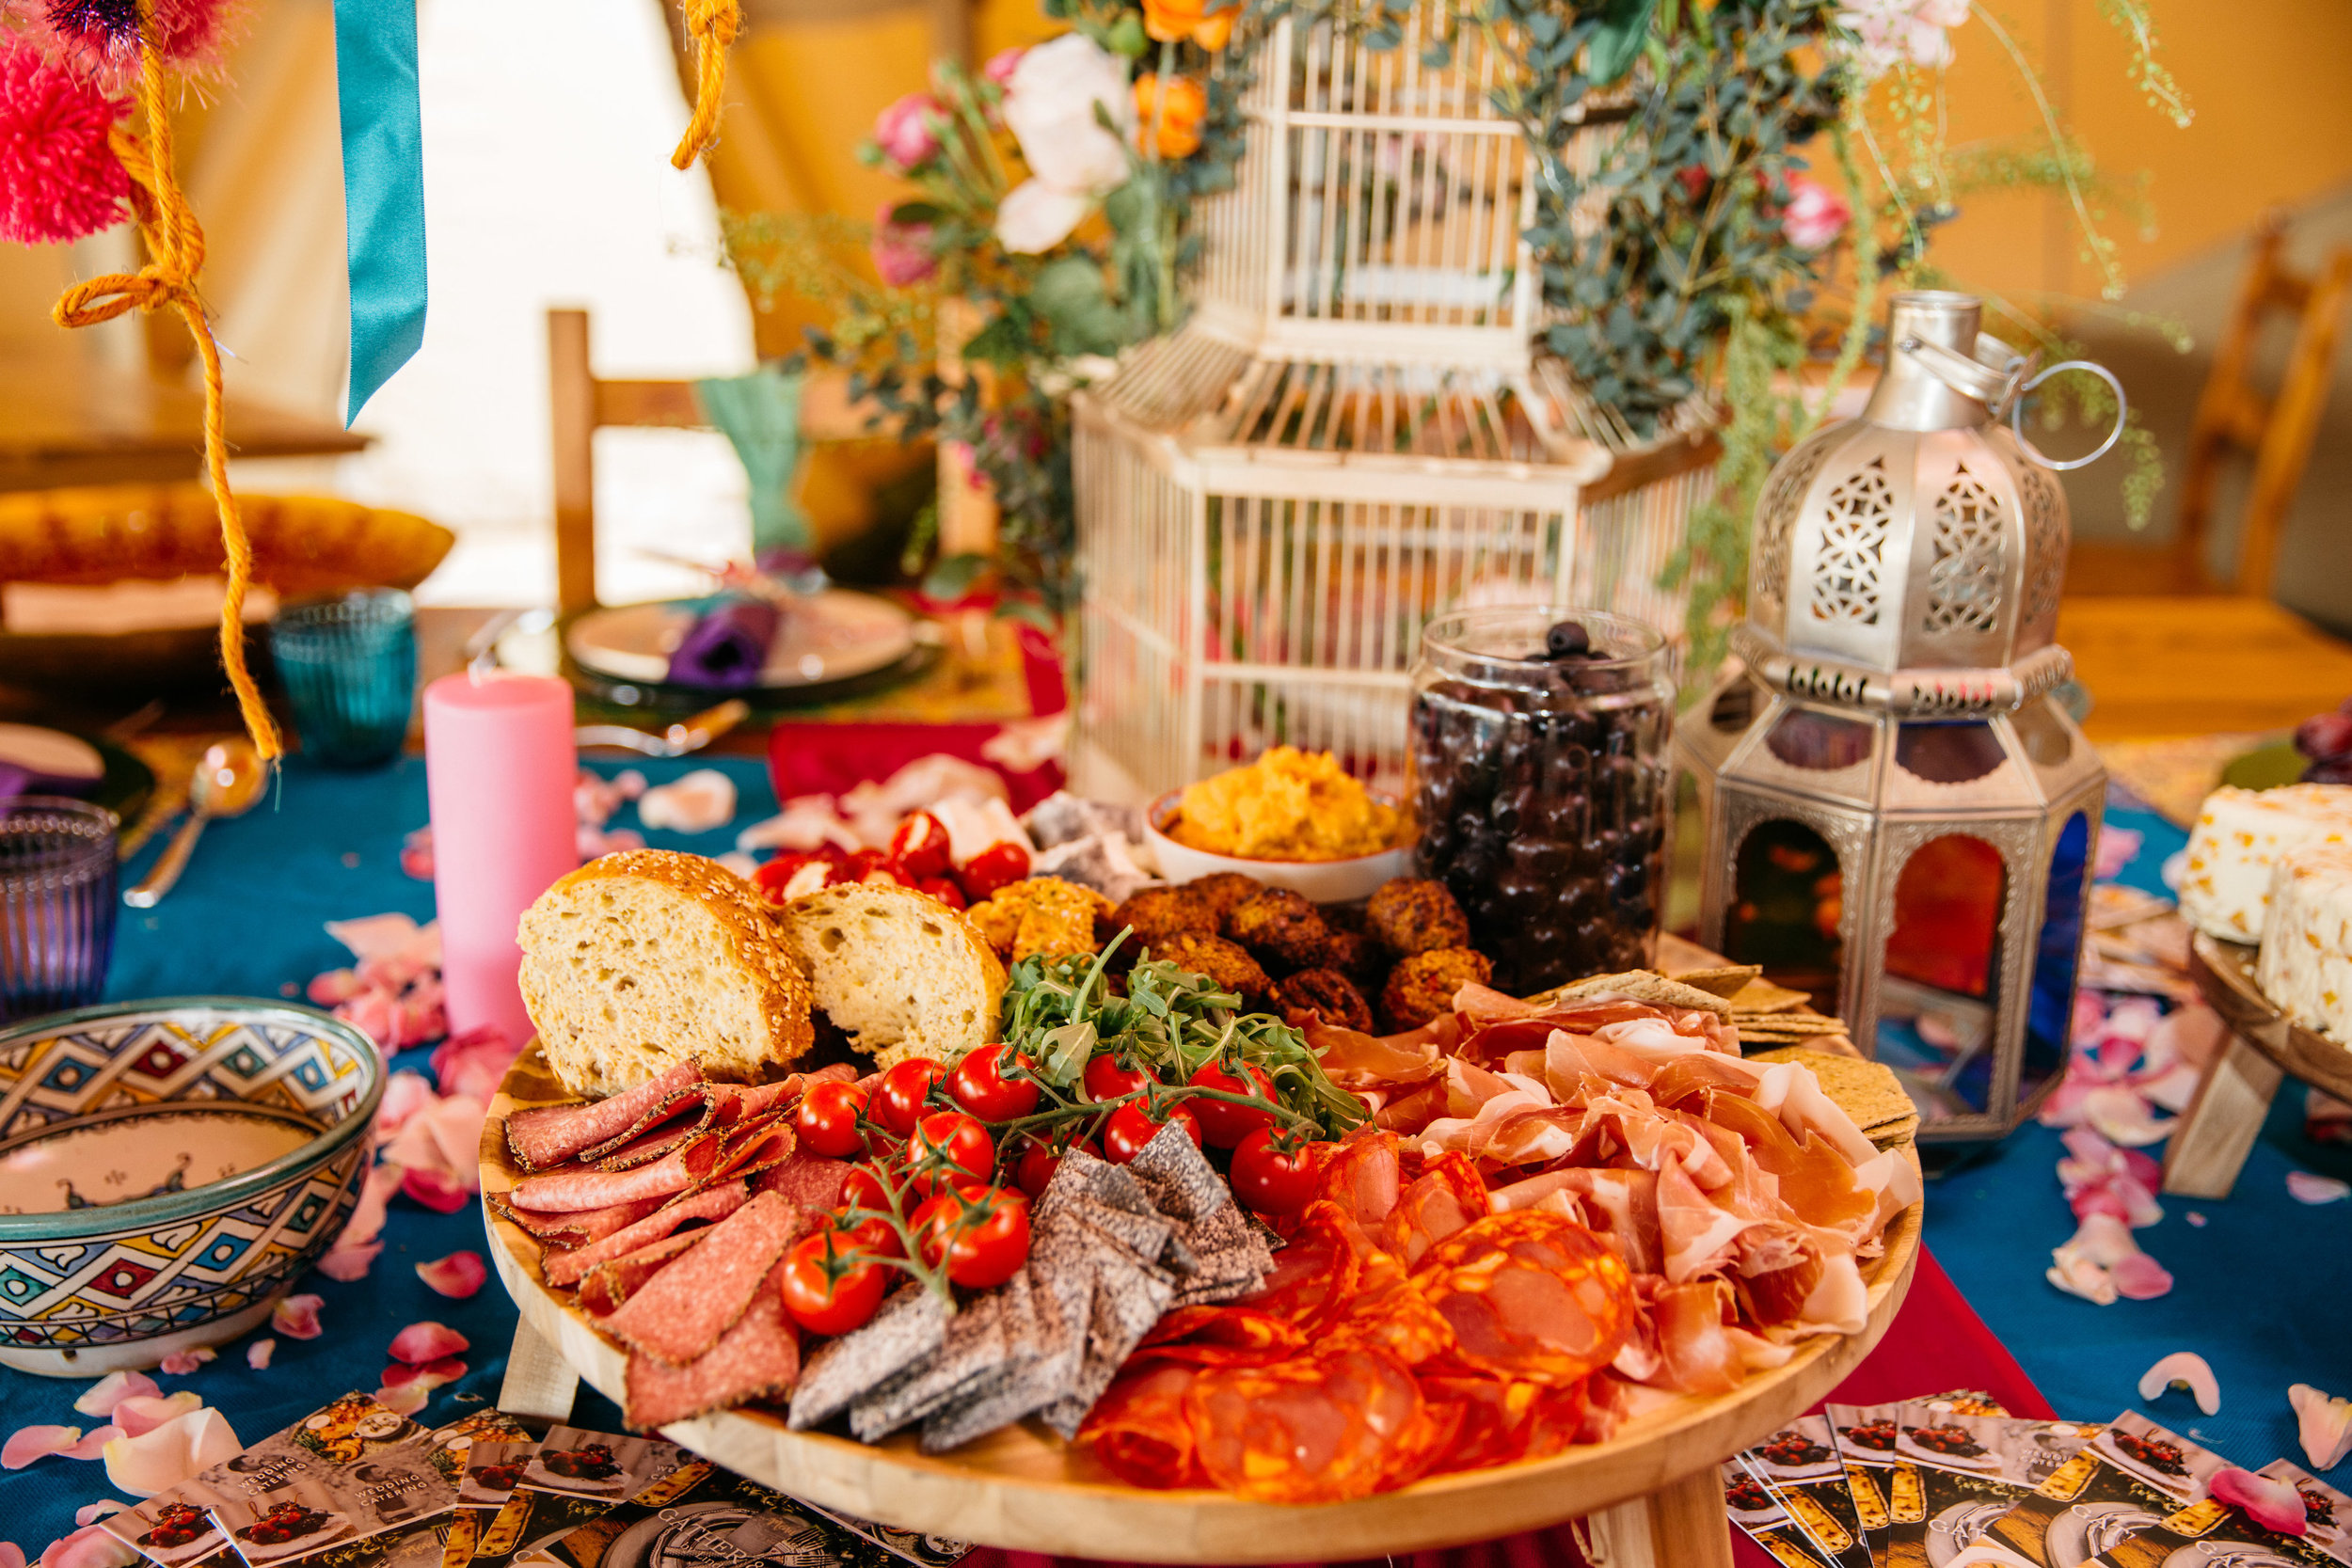 Colourful Grazing Platter 2019 Wedding Trend Festival Themed Wedding